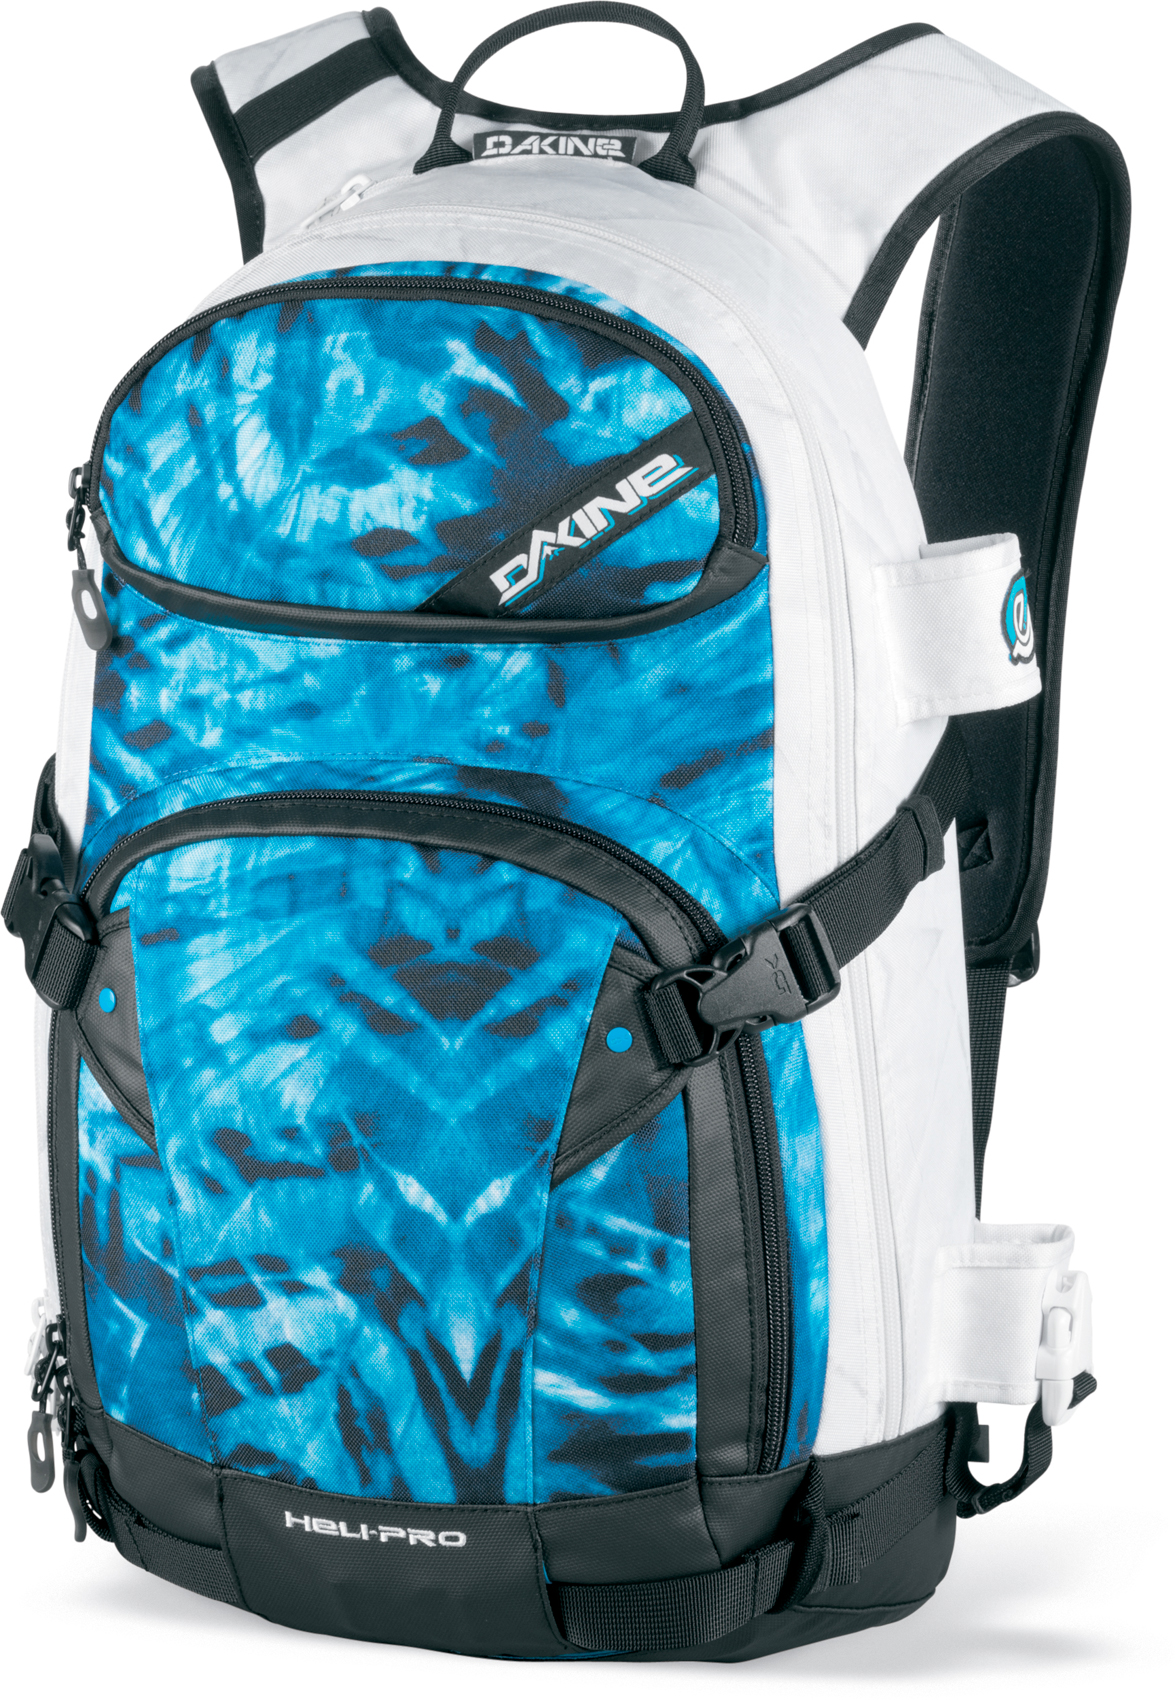 Dakine Heli Pro 20L Snow Backpack New 2014 Snowboard Bag Ski ...